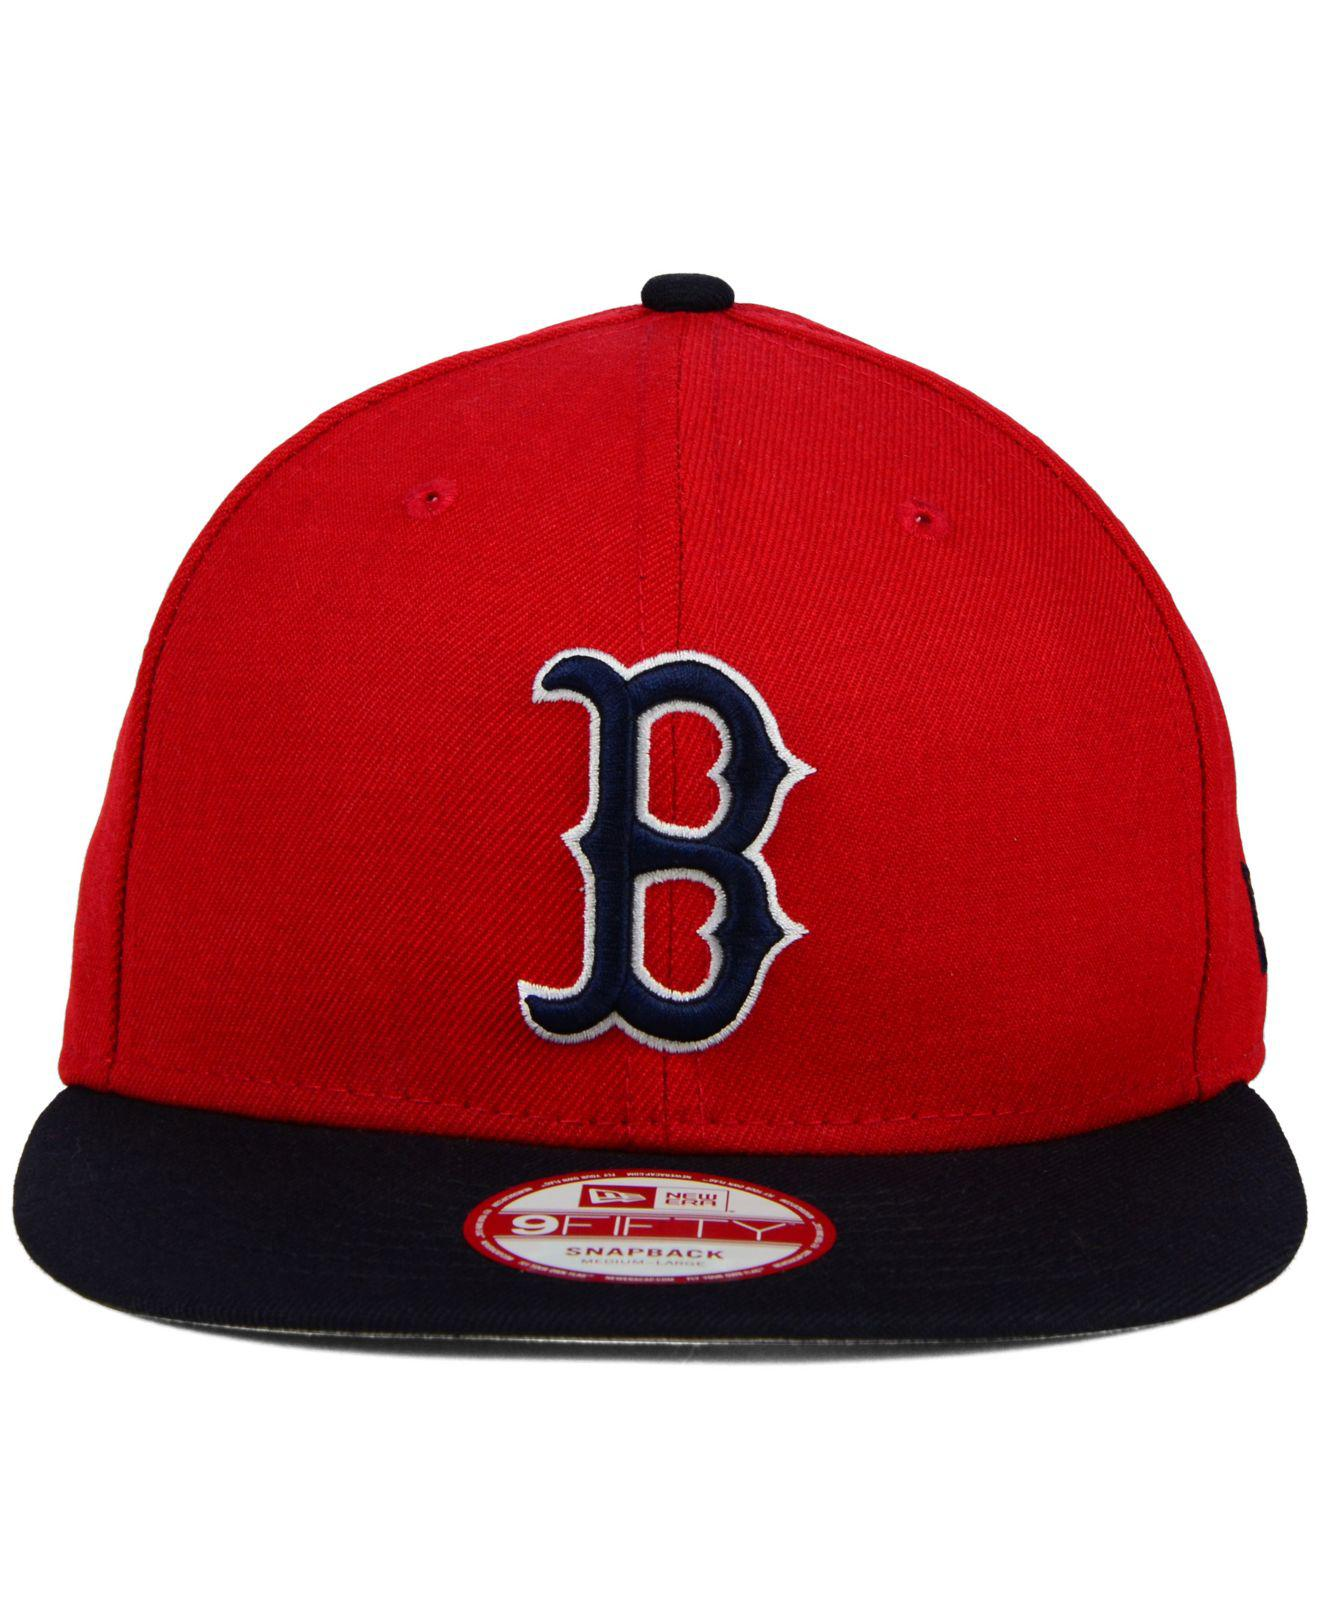 8002aa47dd3 Lyst - KTZ Boston Red Sox 2-tone Link 9fifty Snapback Cap in Red for Men